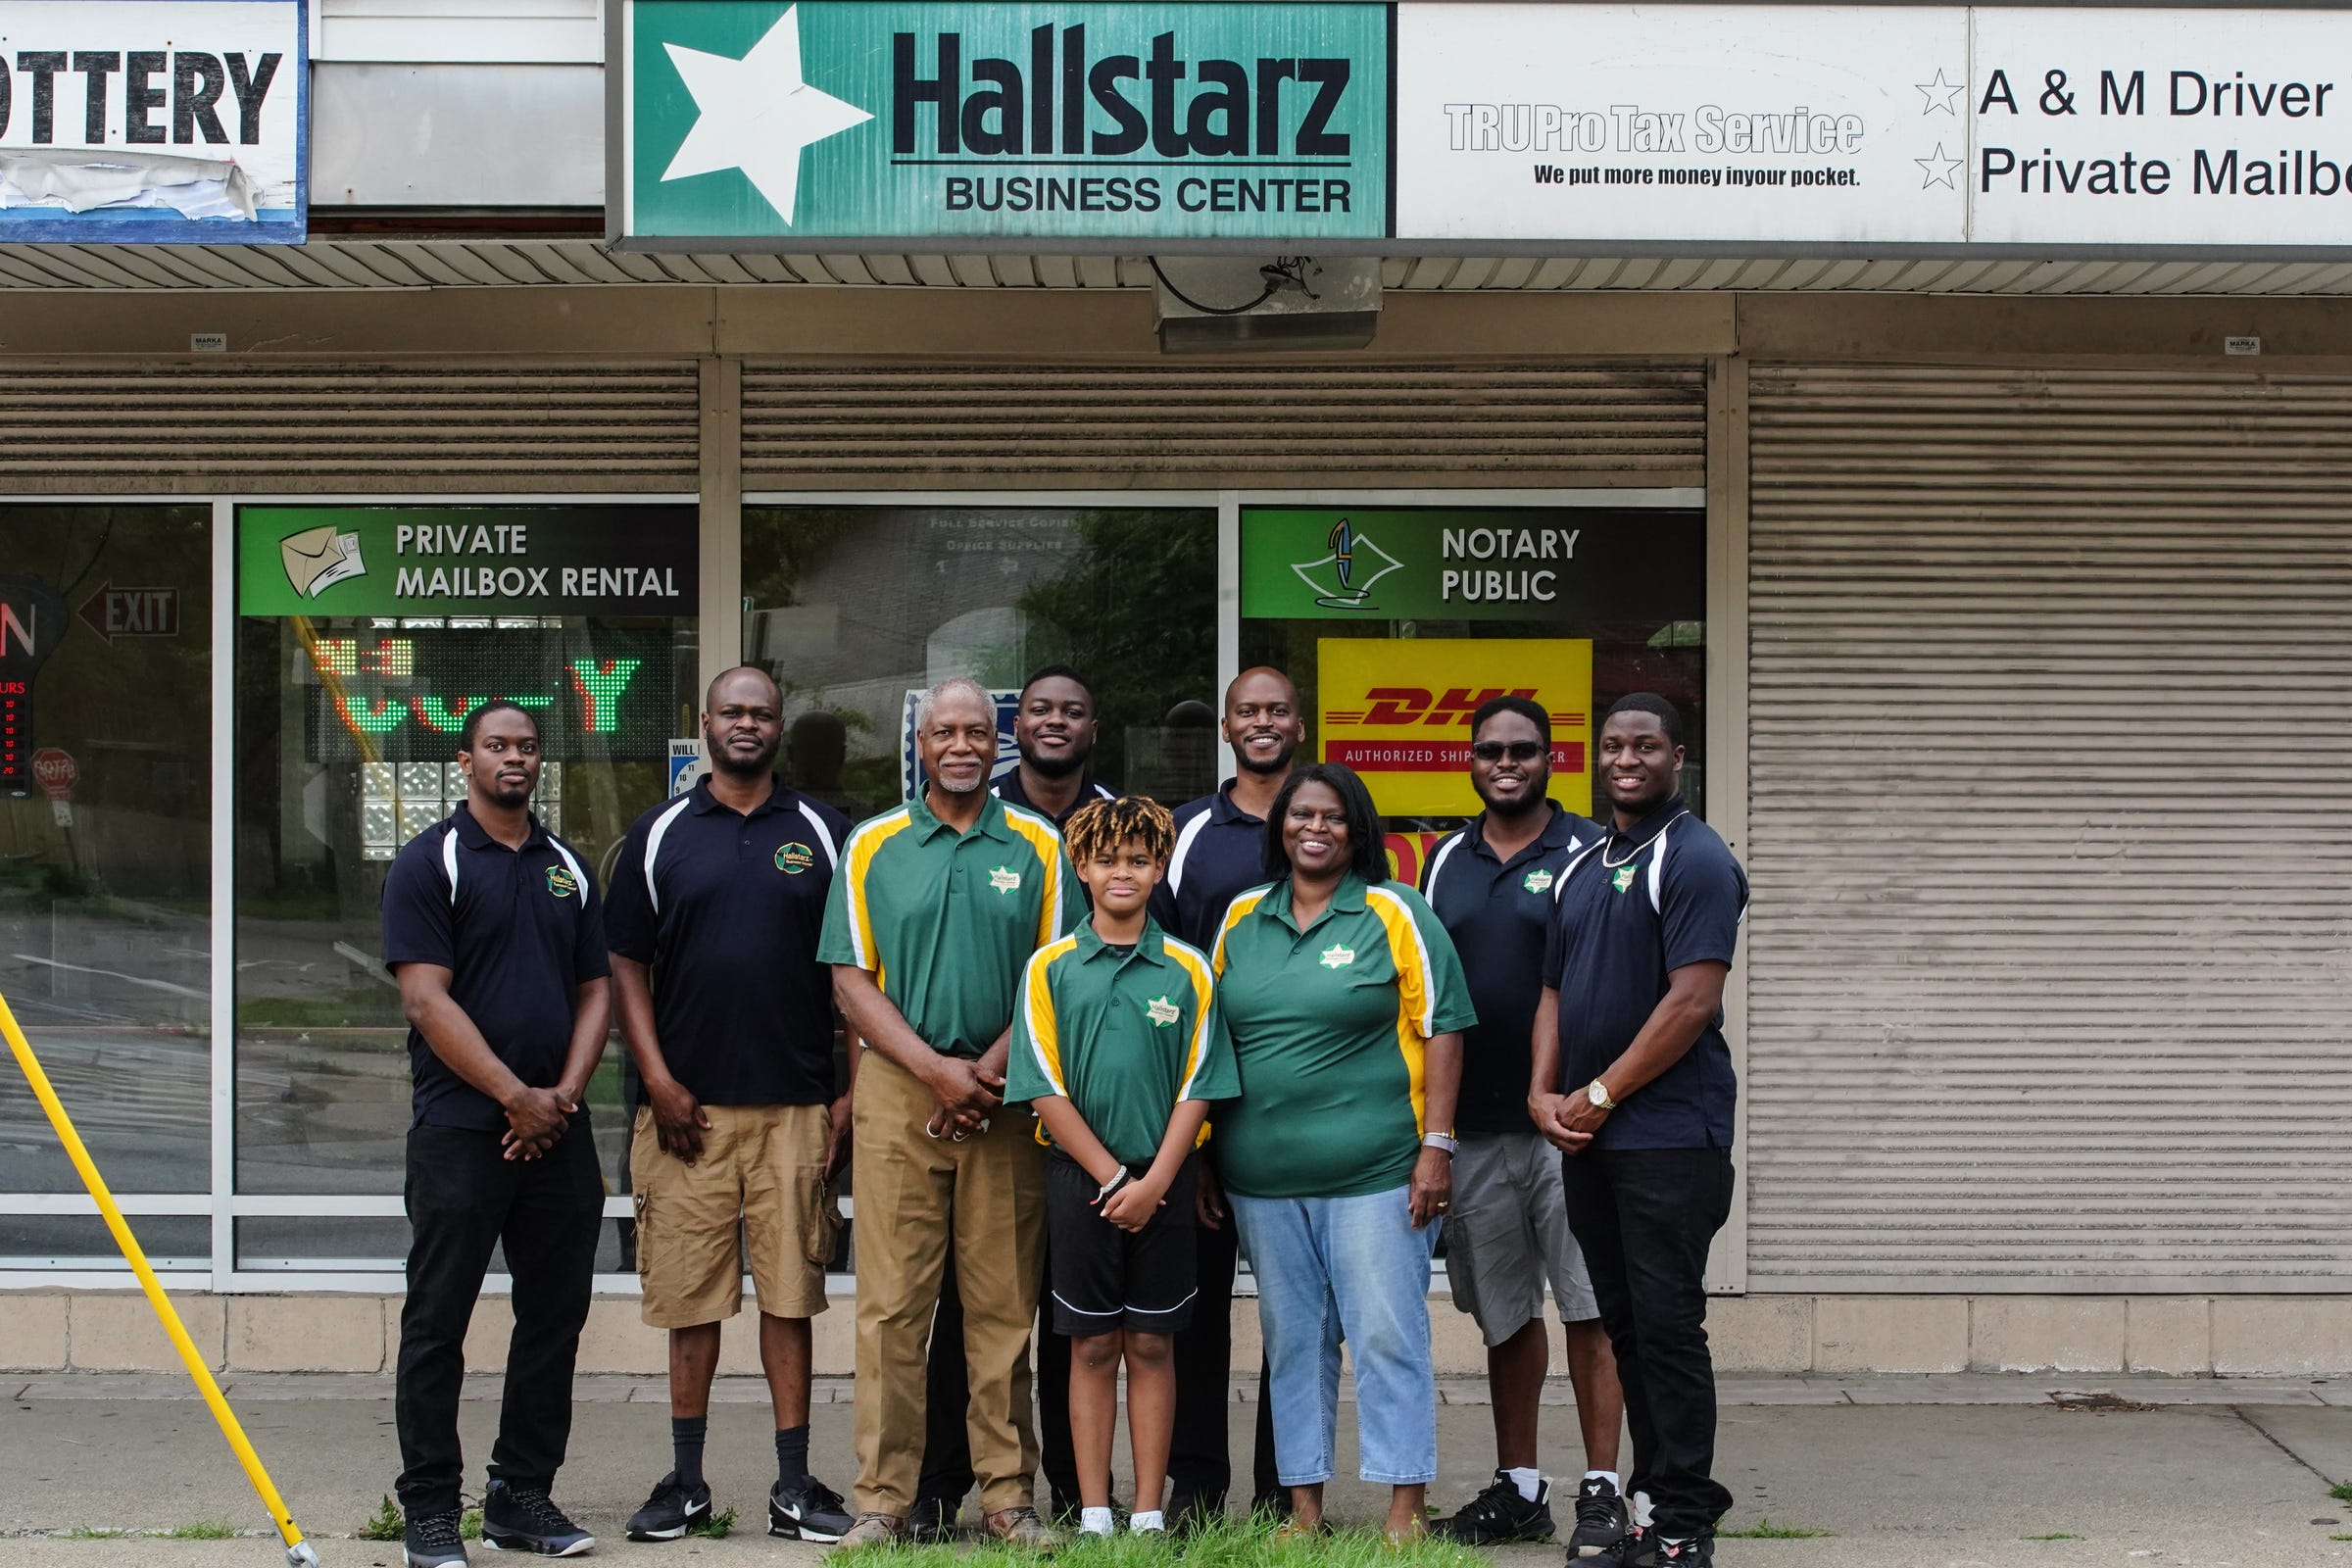 (Front to Back, L to R) Marquis Jr., 10, Milton Jr., 65, Vanessa, 66, Mylan, 32, Marquis, 44, Martez, 31, Mario, 45, Milton lll, 38, and Malik Hall, 26, in front of Hallstarz Business Center in Detroit on Thursday, July 15, 2021. The business center is a one-stop-shop in the Bagley neighborhood. A neighborhood source for packing, shipping, printing and other business services. Created 36 years ago by a Detroit couple, Milton Hall Jr. and Vanessa Hall. The business is now run by their oldest son, Mario Hall with help from his five brothers.